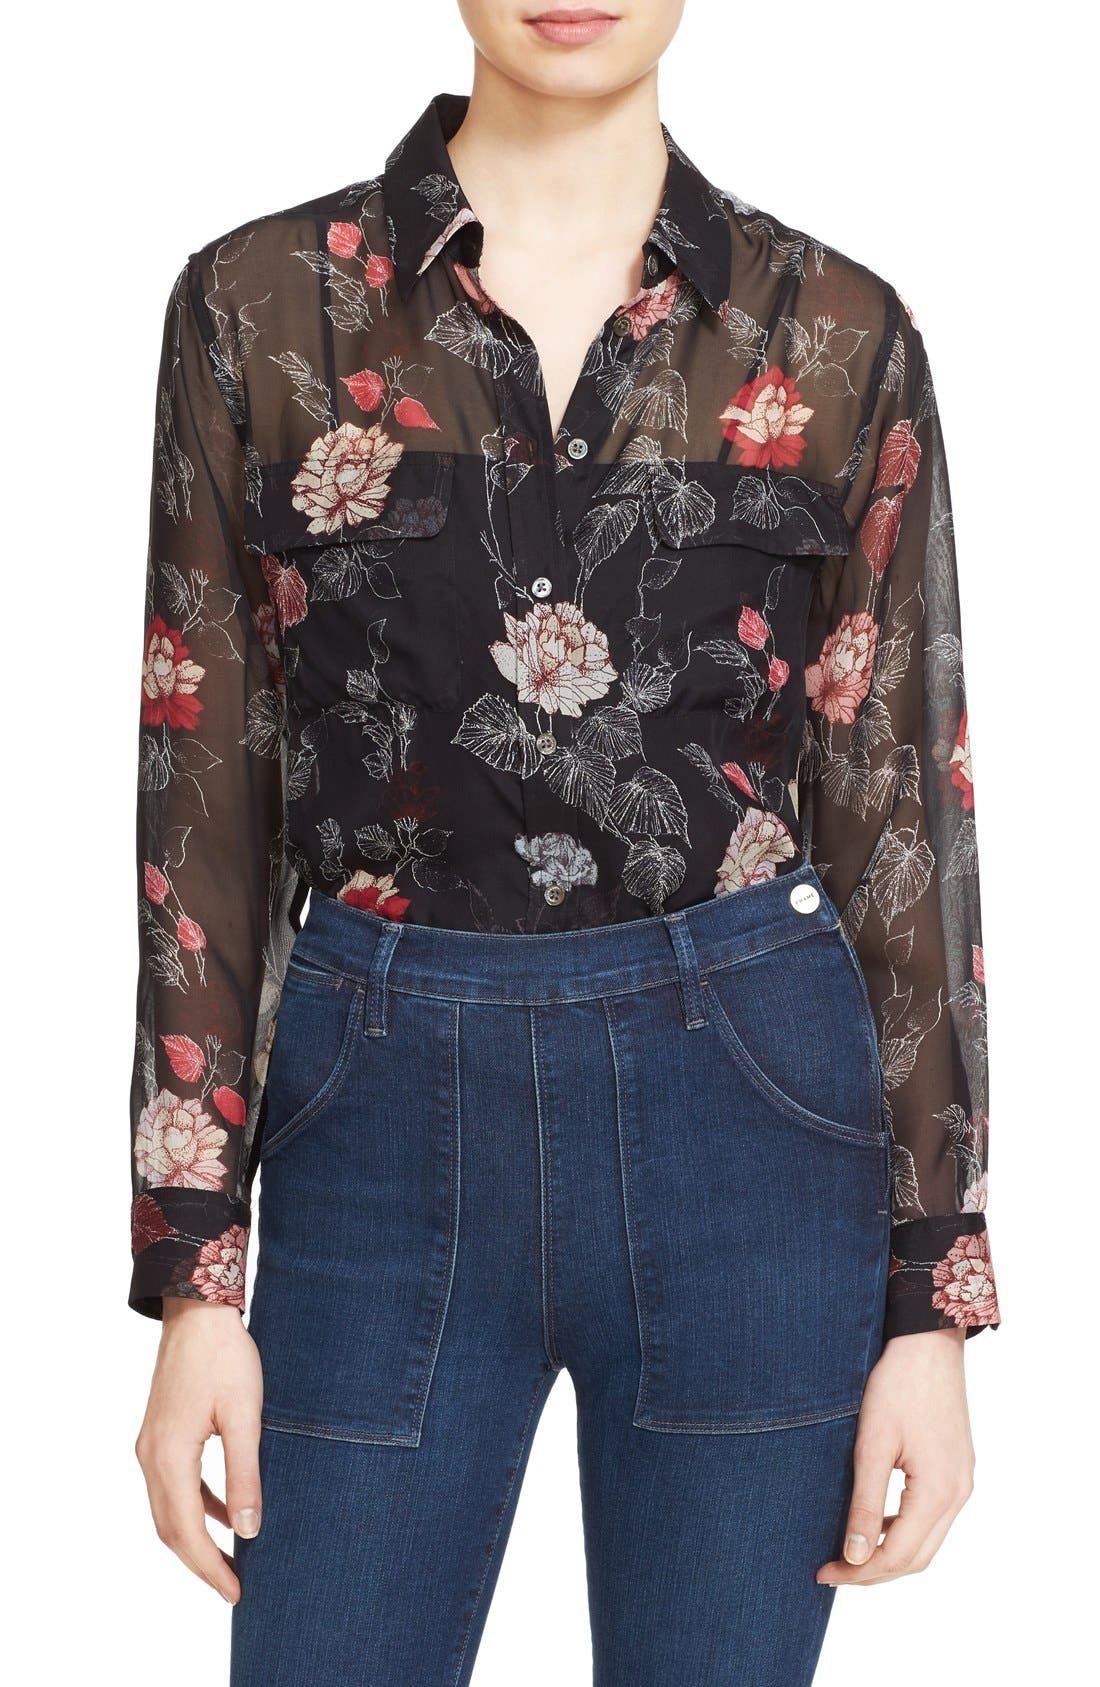 Alternate Image 1 Selected - Equipment 'Signature' Floral Print Silk Shirt